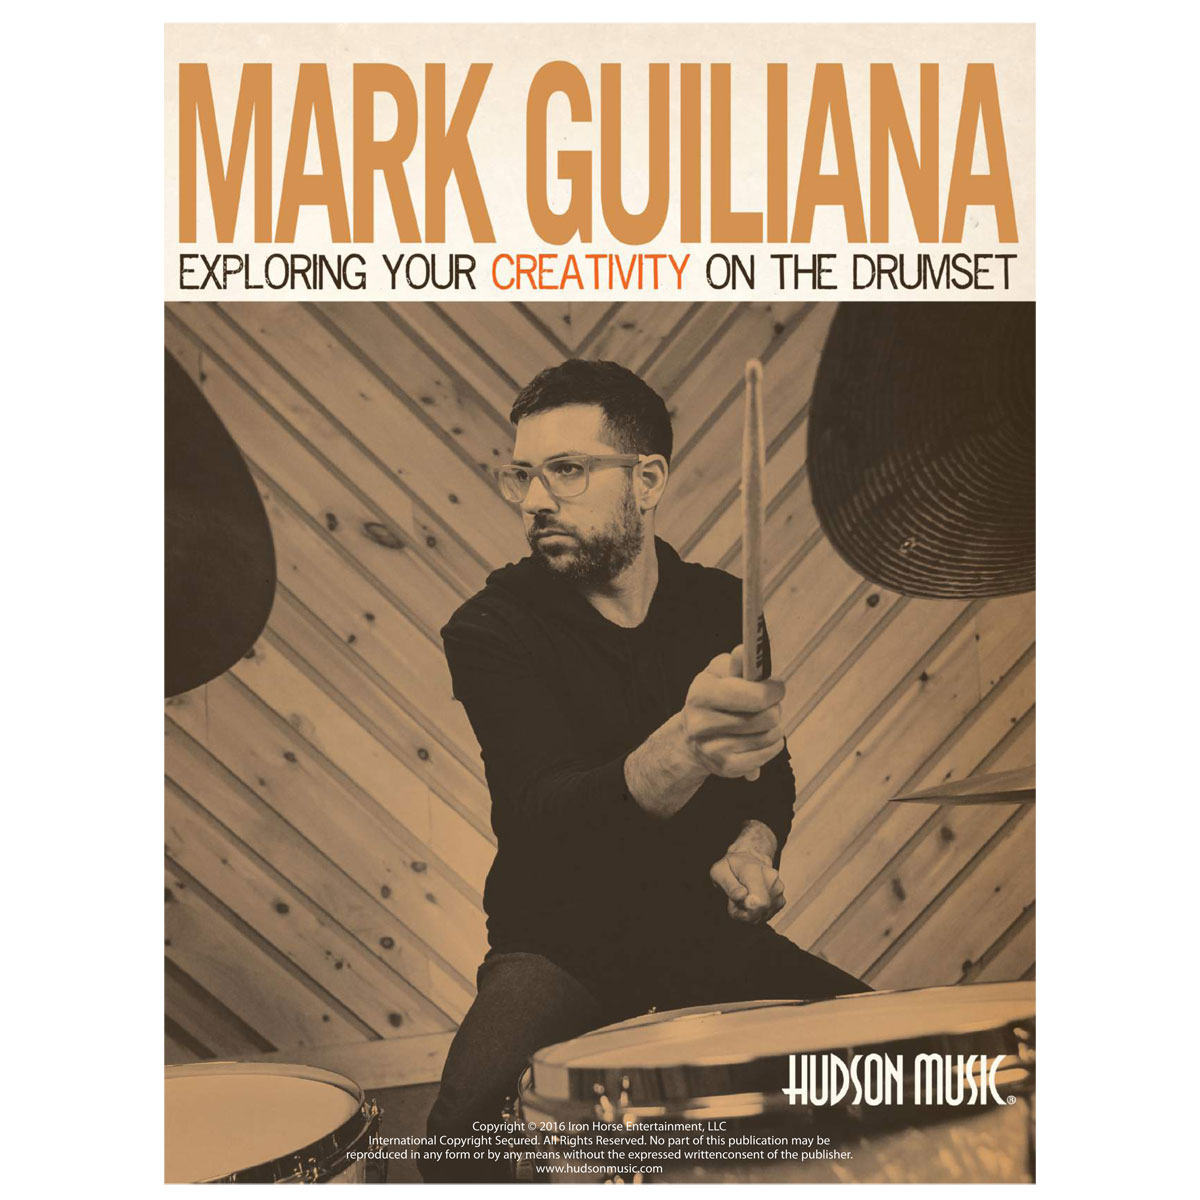 Exploring Your Creativity on the Drumset by Mark Guiliana (Book & DVD)